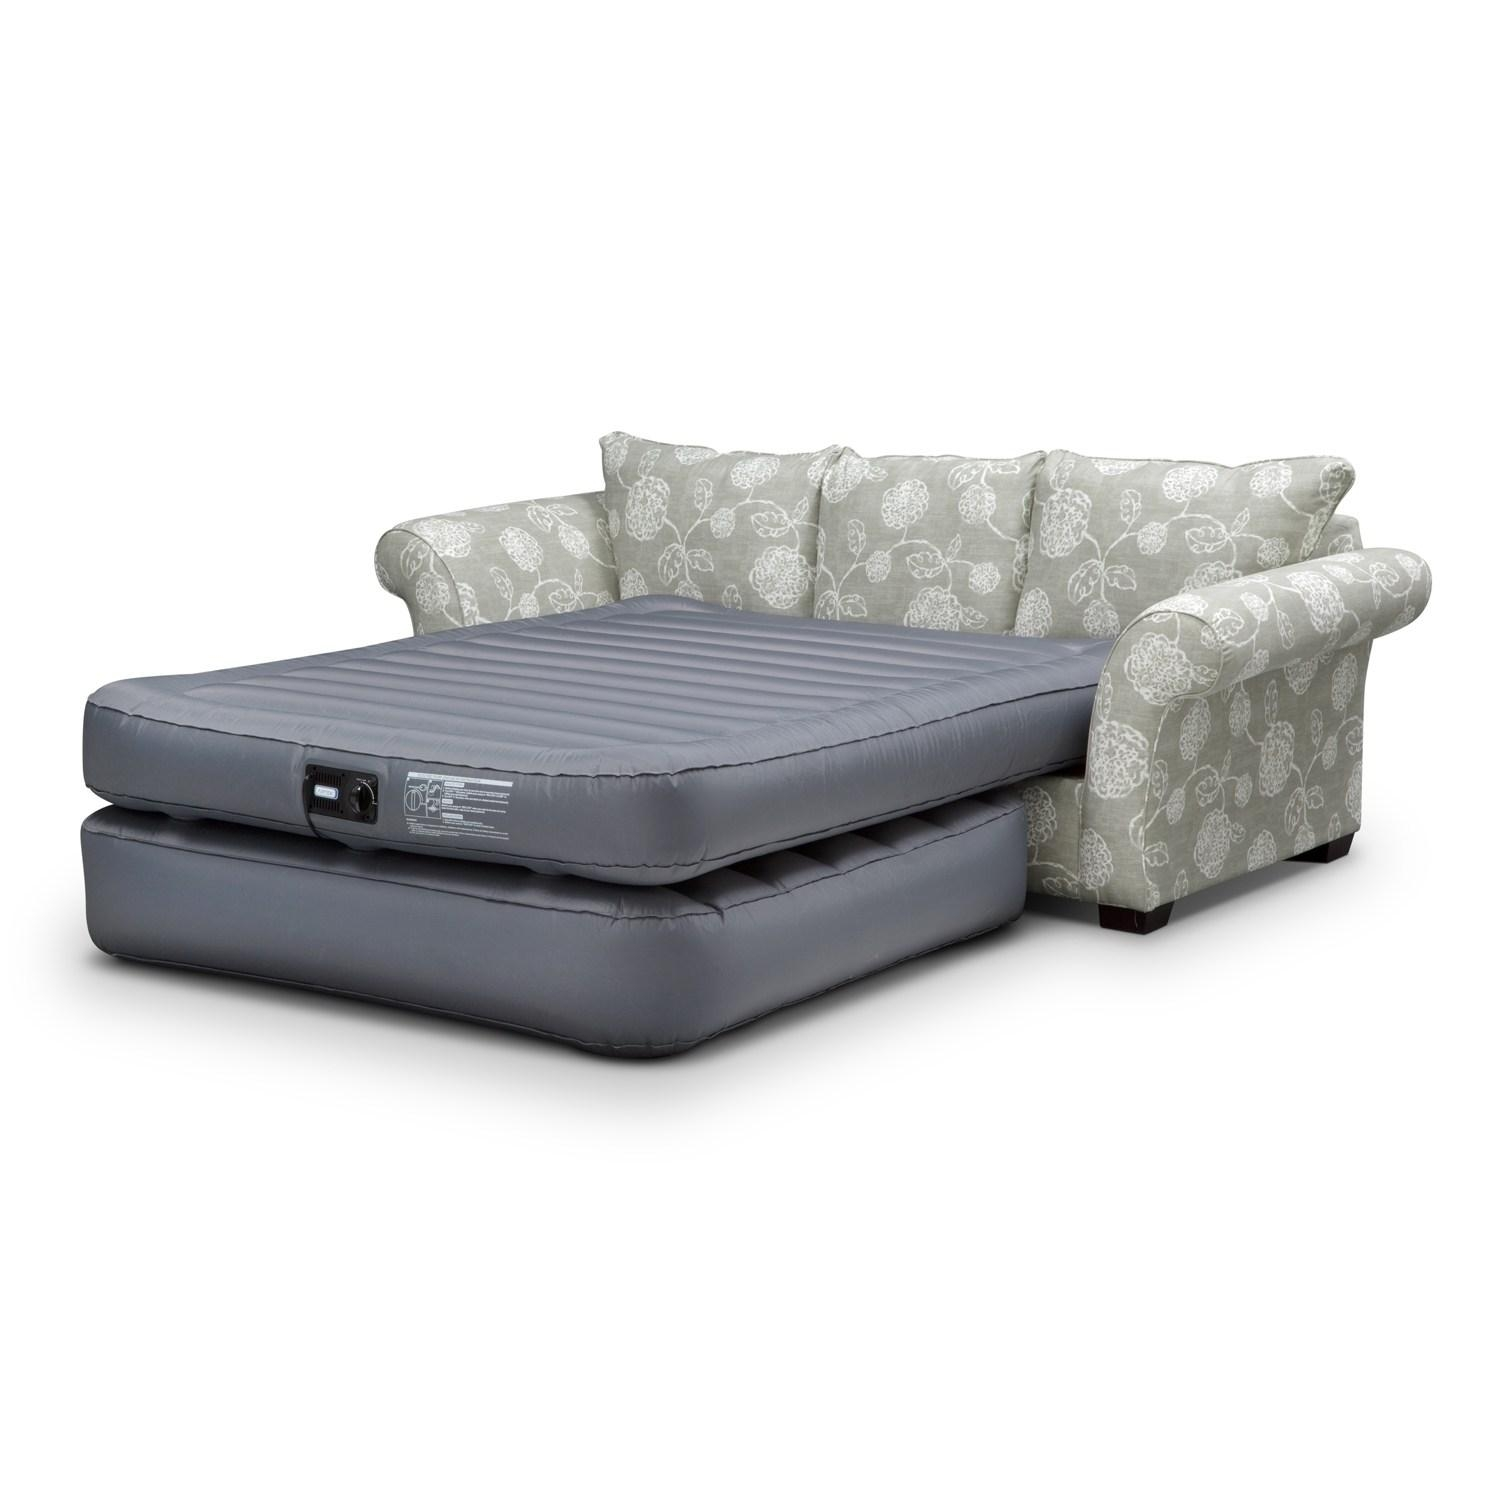 Furniture: Futon Couches At Walmart | Ava Velvet Tufted Sleeper Regarding Ava Velvet Tufted Sleeper Sofas (View 11 of 20)